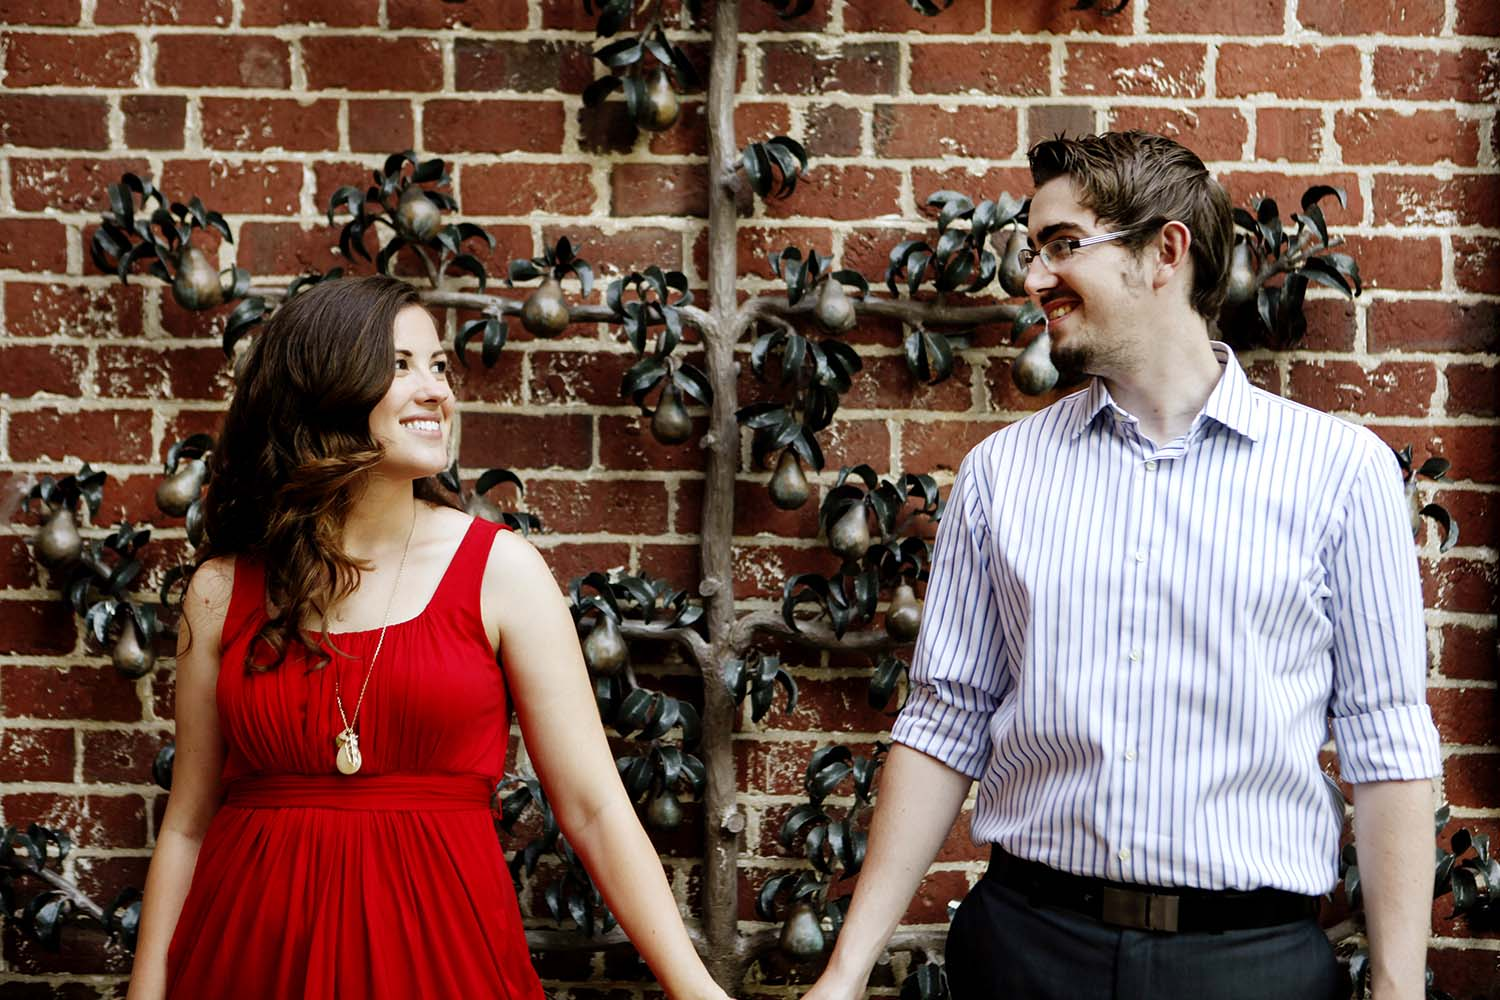 Cantigny engagement photography, Illinois, engaged, summer, day, photos, sculpture, brick, wall, edgy